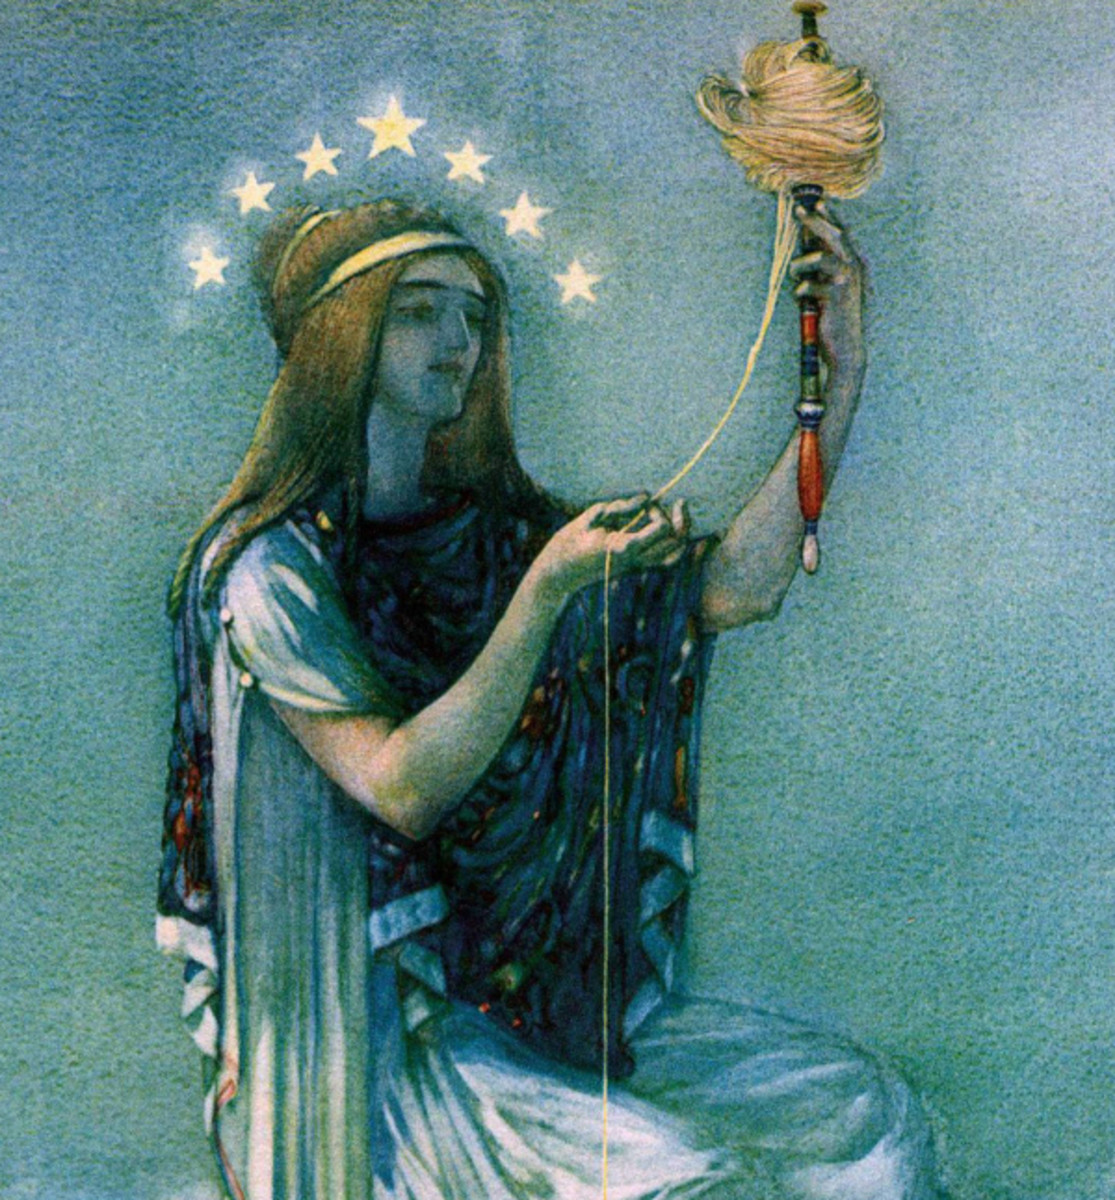 """Here we show a portion of 'Willingly give thyself up to Clotho ...' - it is from the suite by William Russell Flint published in """"The Thoughts of the Emperor Marcus Aurelius Antoninus"""" (1909)."""